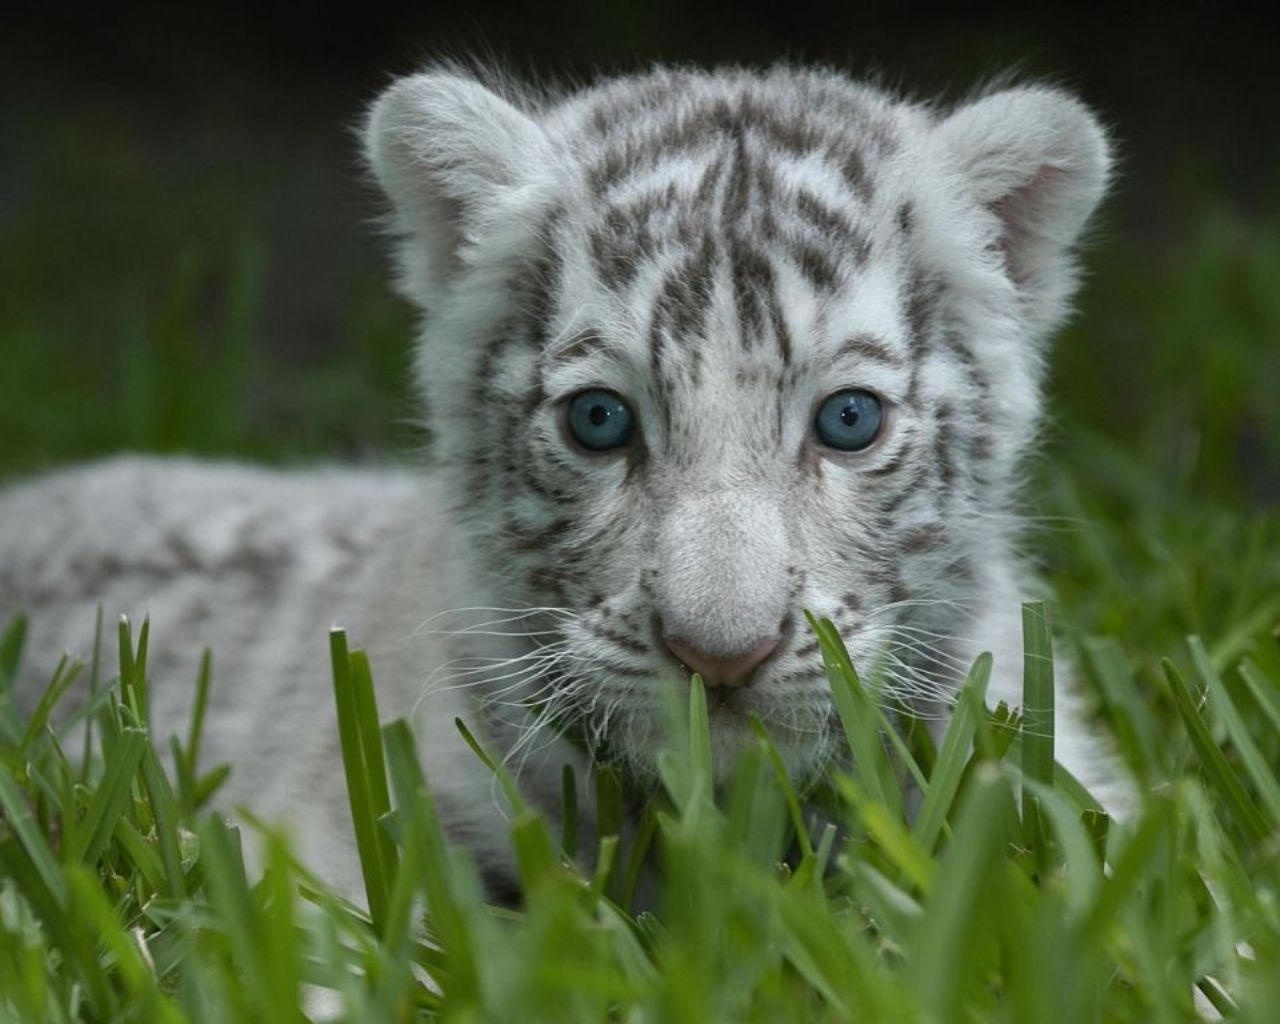 White Tiger Cubs Wallpaper Hd Amazing Wallpapers 1280x1024